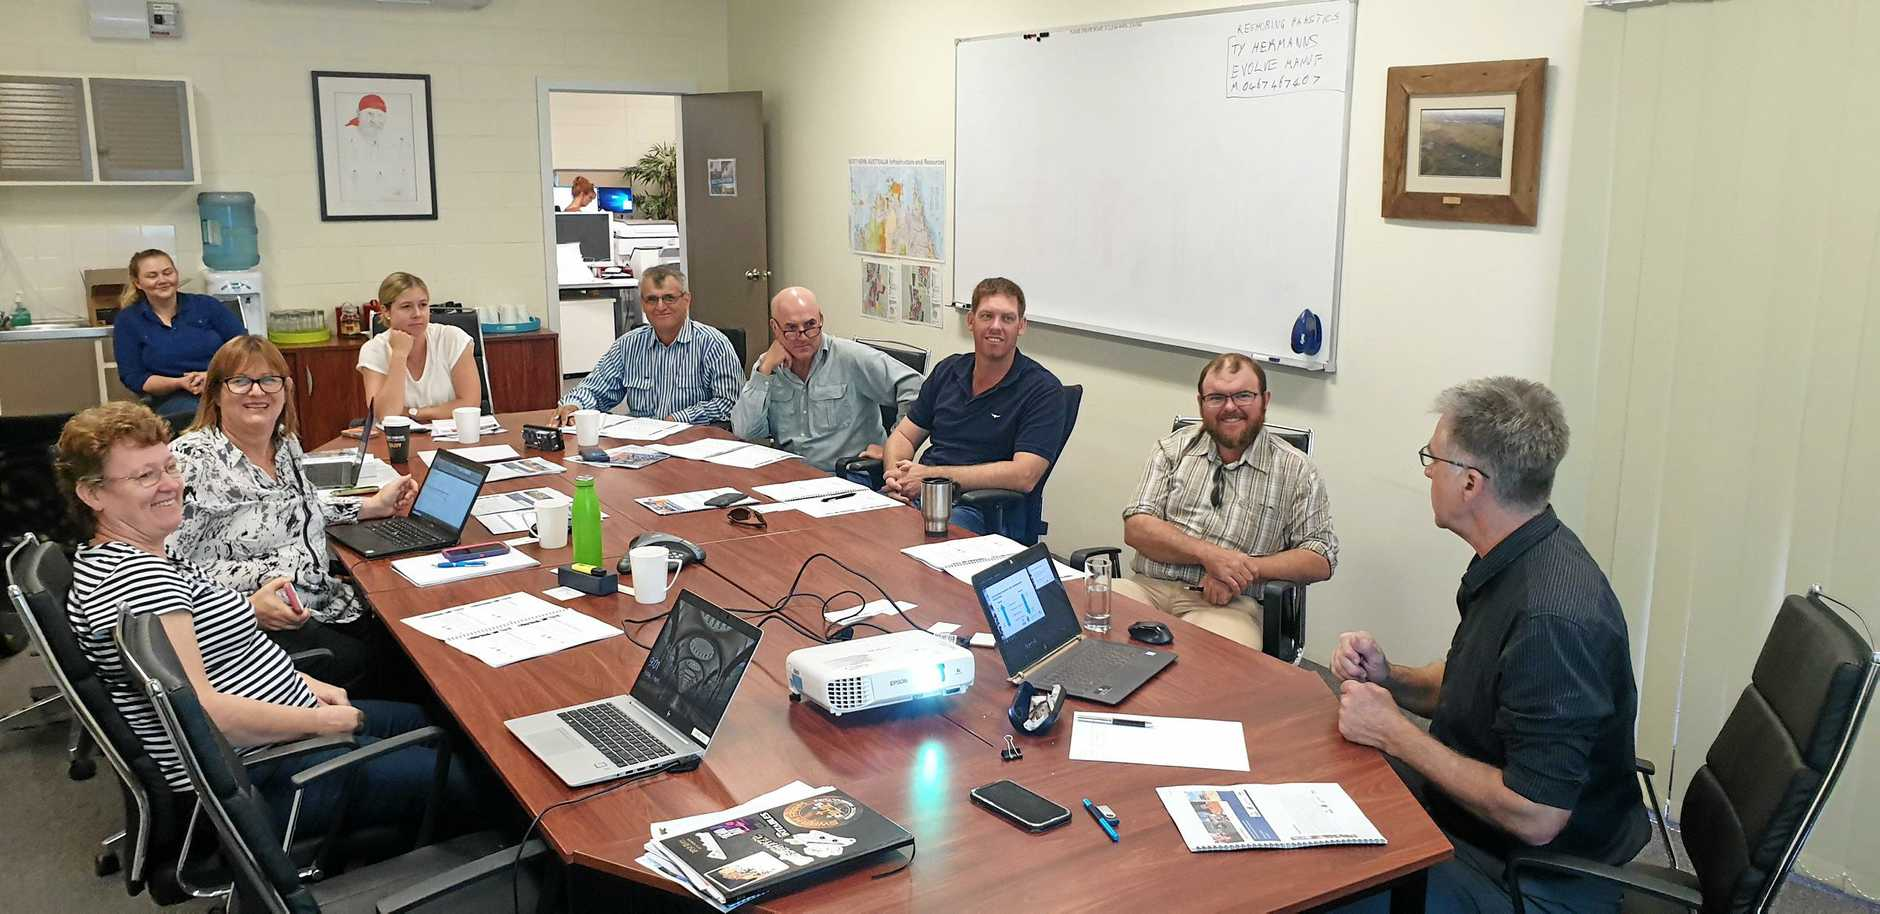 Export Ready program participants came from across the Central Highlands - from Clermont to Rolleston.